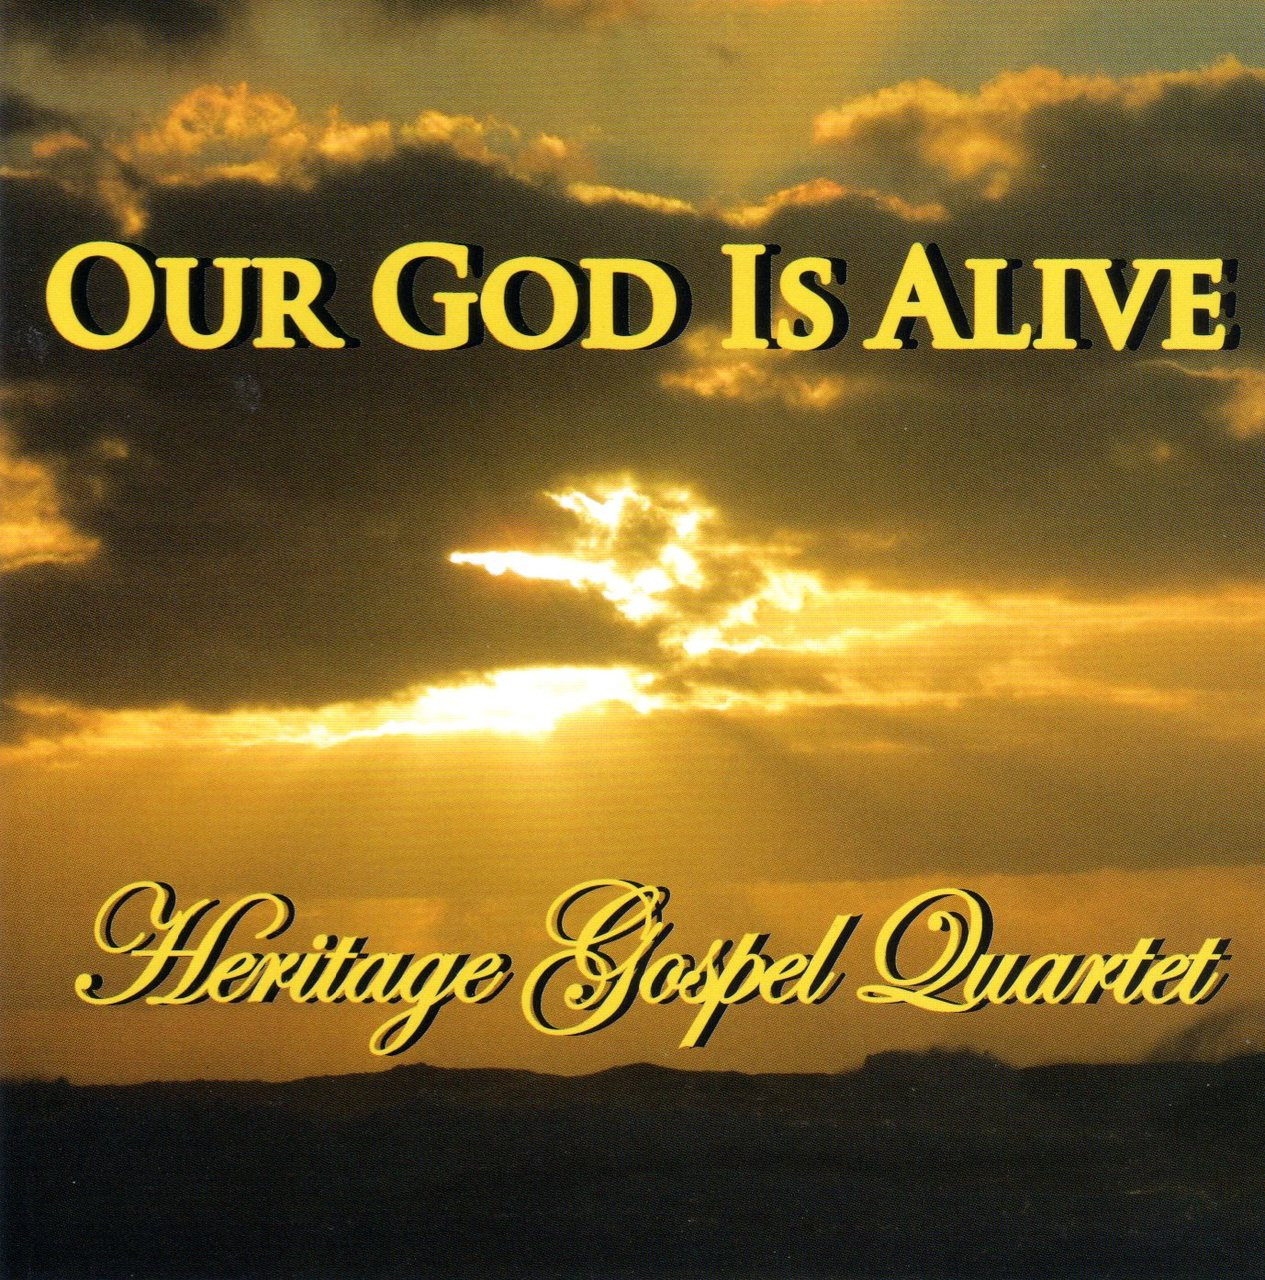 god is alive For the word of god is alive and efficient and sharper than any twoedged sword, piercing even to the dividing asunder of soul and spirit, and of the joints and marrow, and is a discerner of the thoughts and intents of the heart king james 2000 bible.